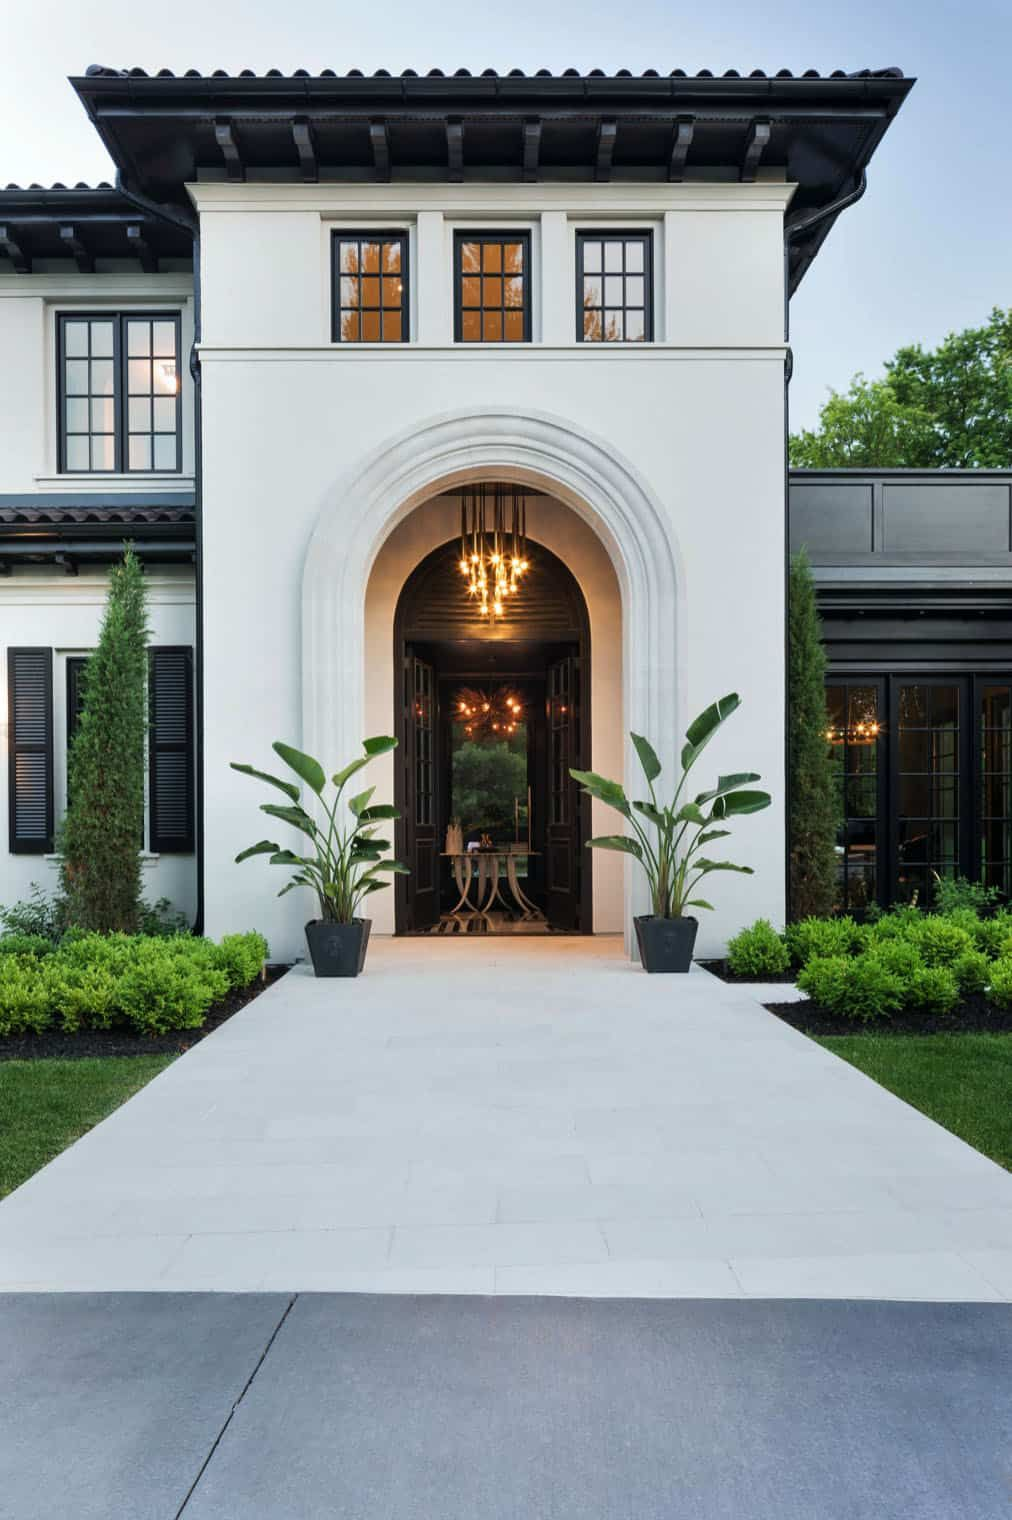 Minnesota home combines old Hollywood glamour with